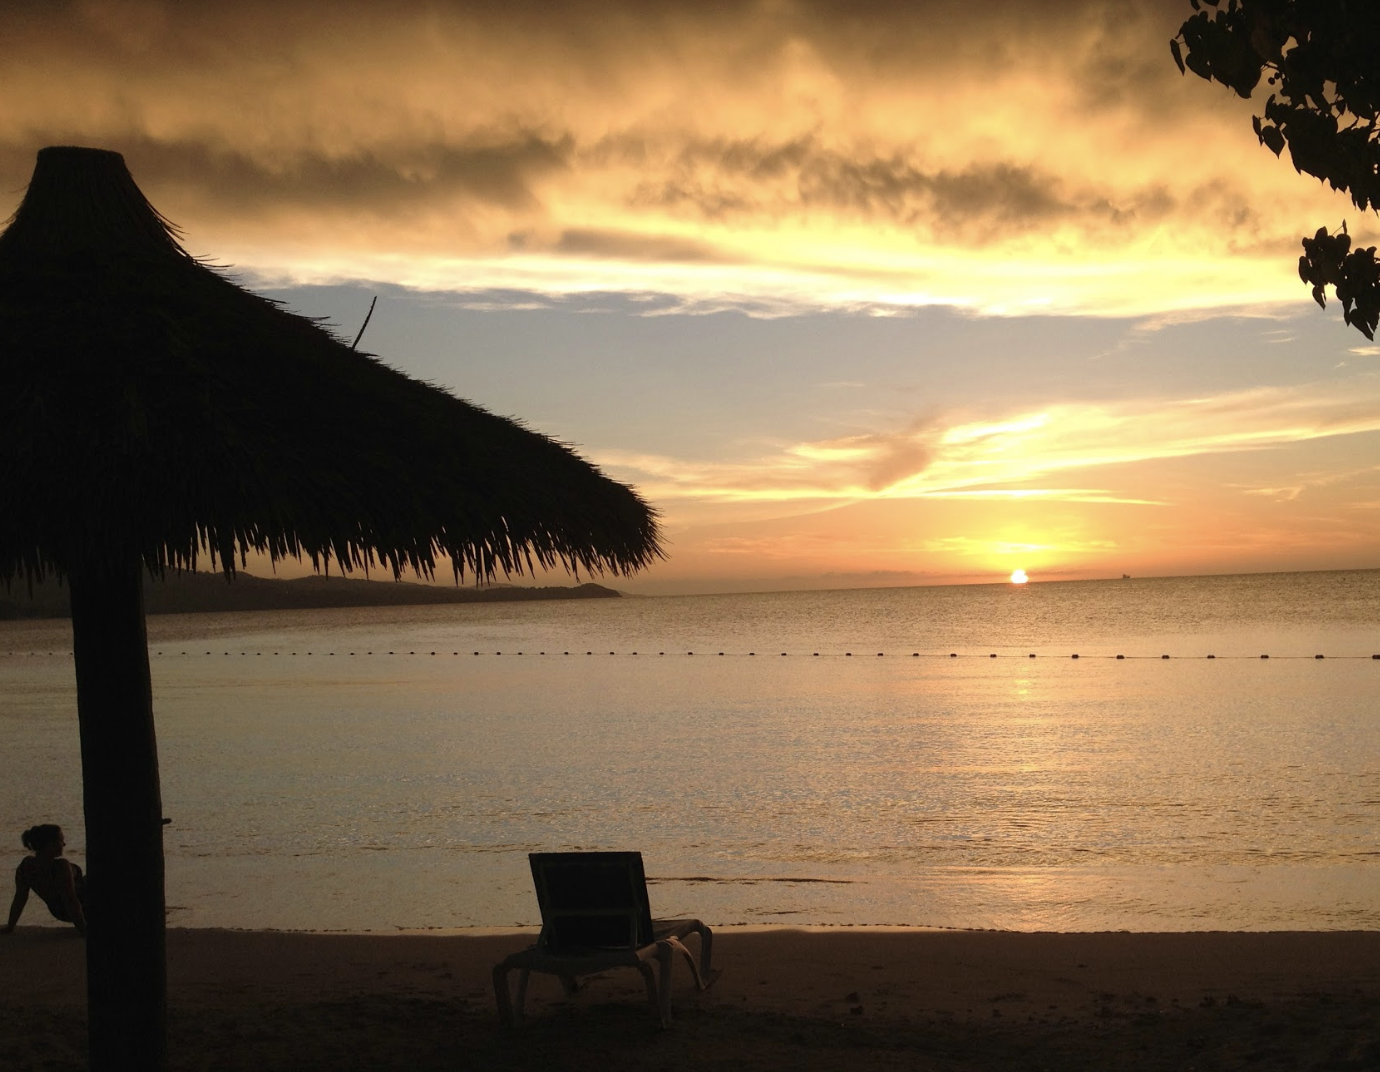 Every Day S A Beach Day 5k 2019: The Sunset Sets On Paradise Every Night At Sunscape Cove